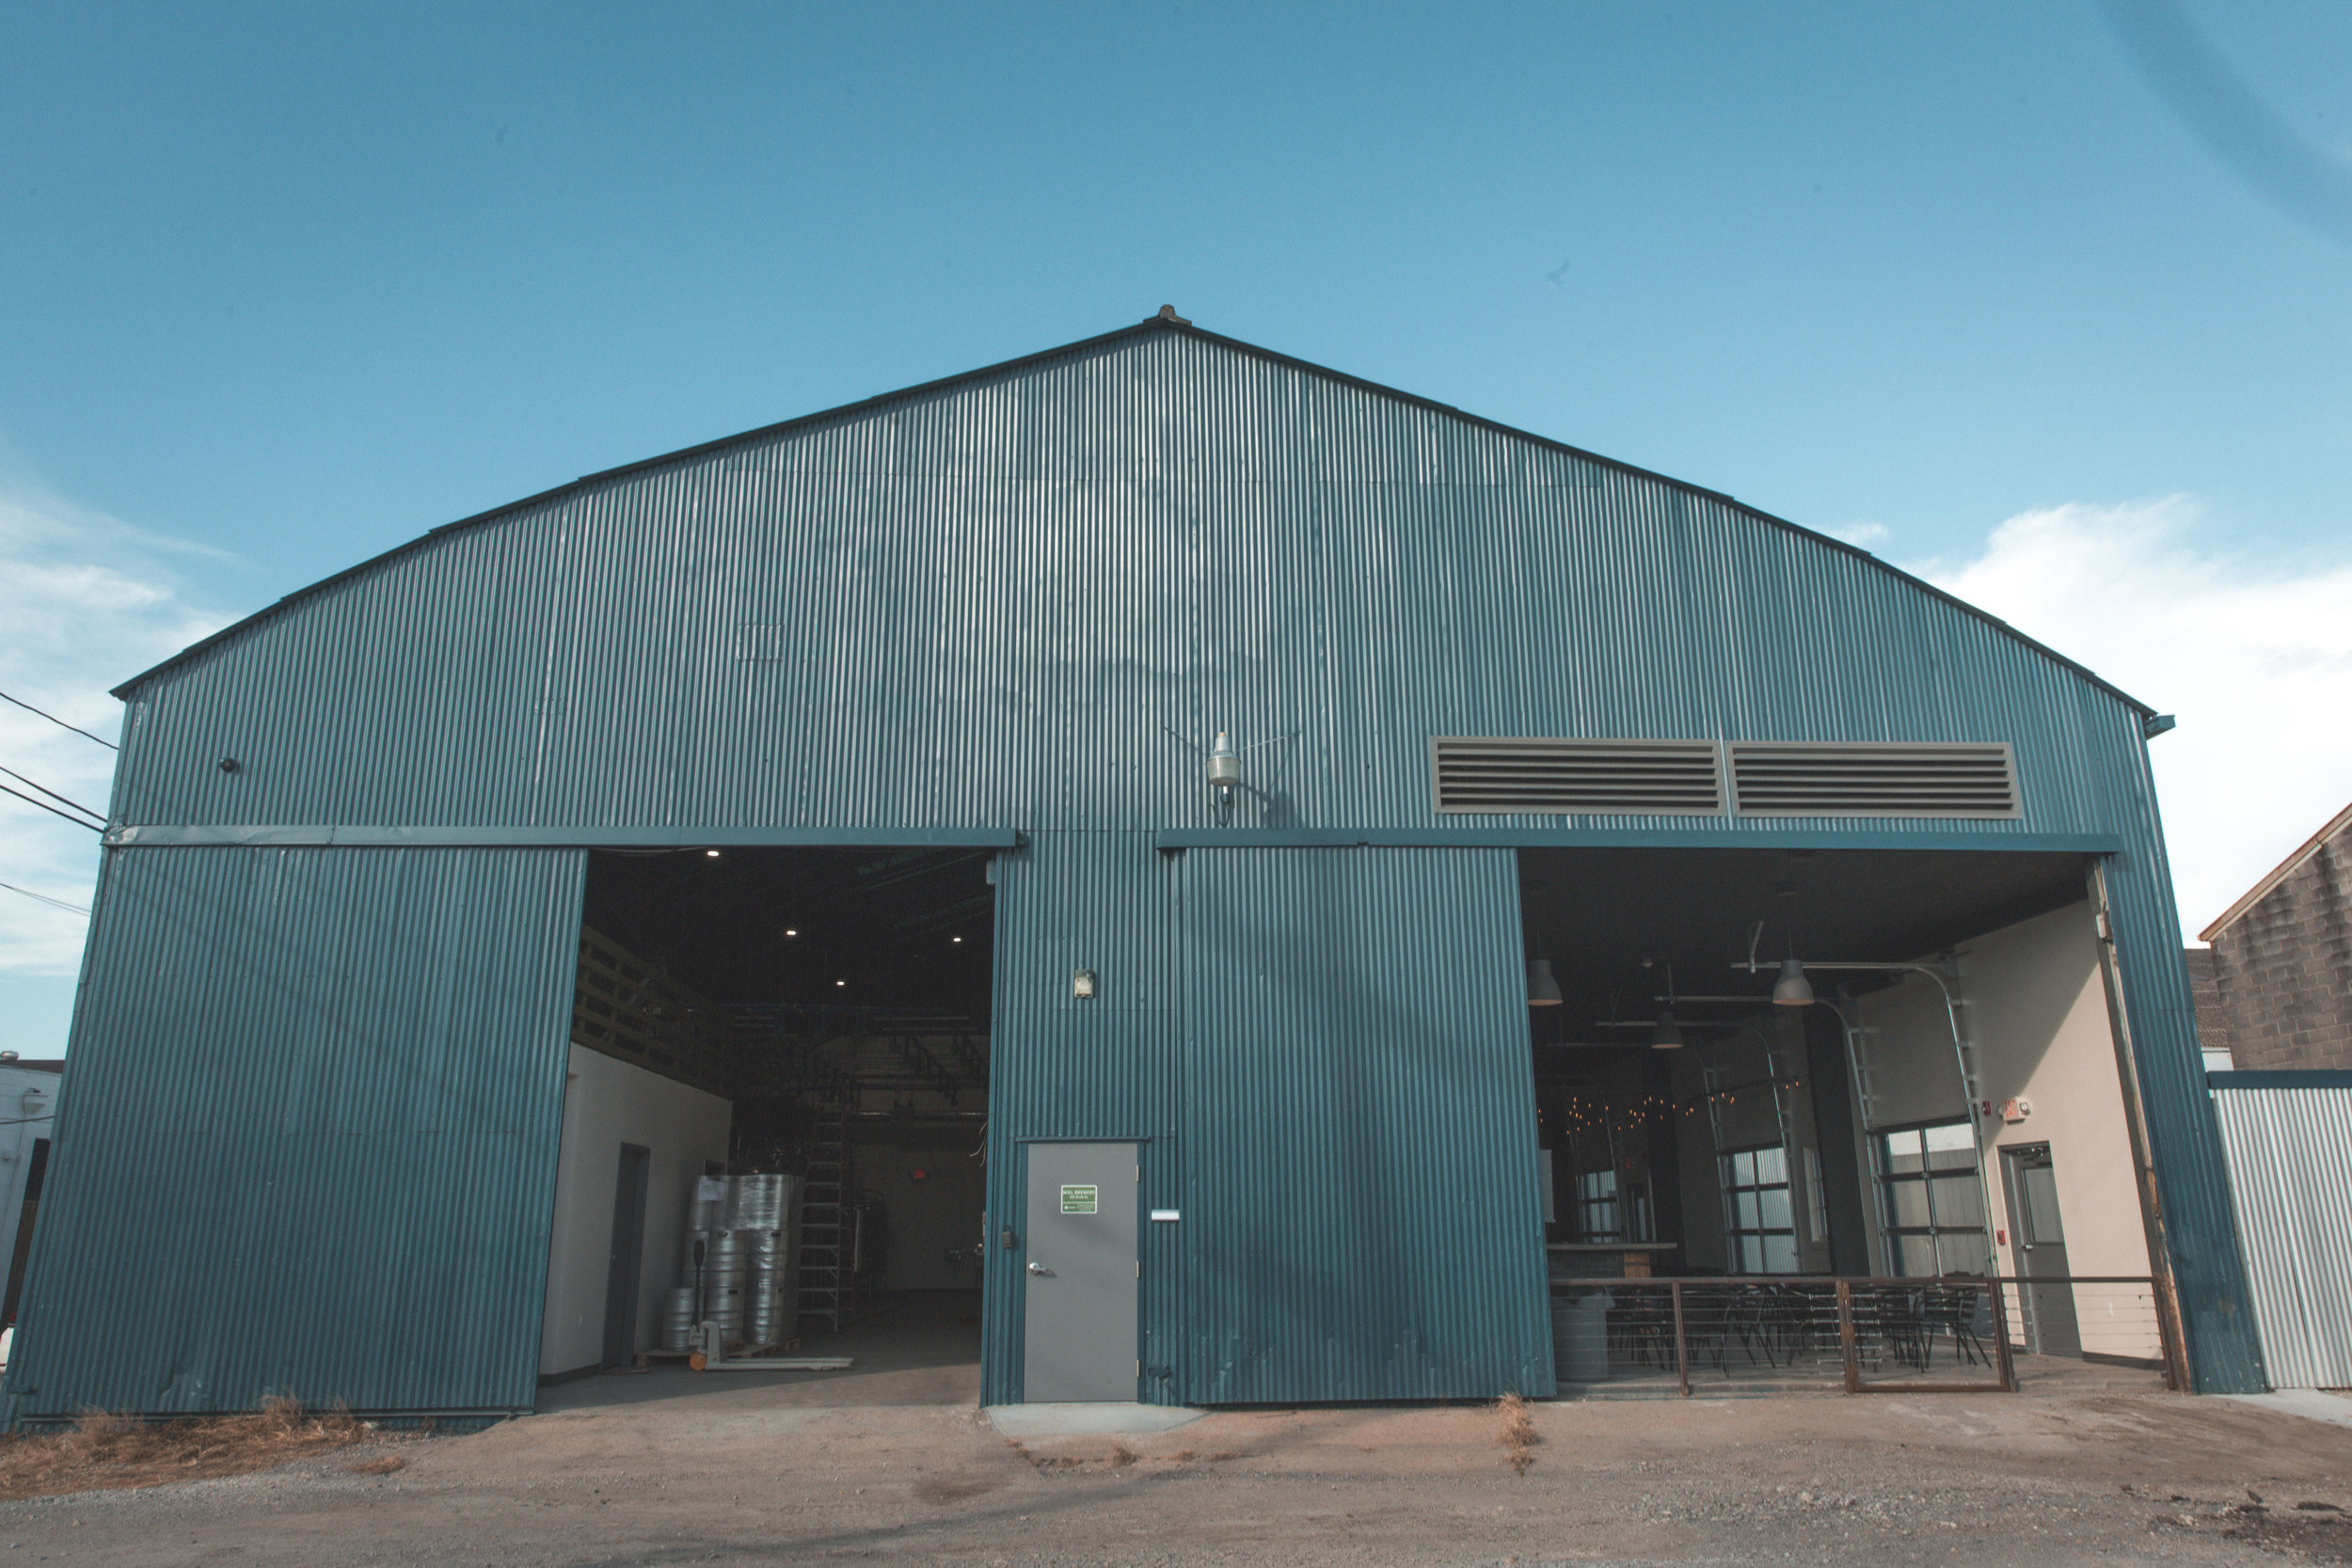 New Orleans_Miel Brewery_July 2018_Miel open doors outside